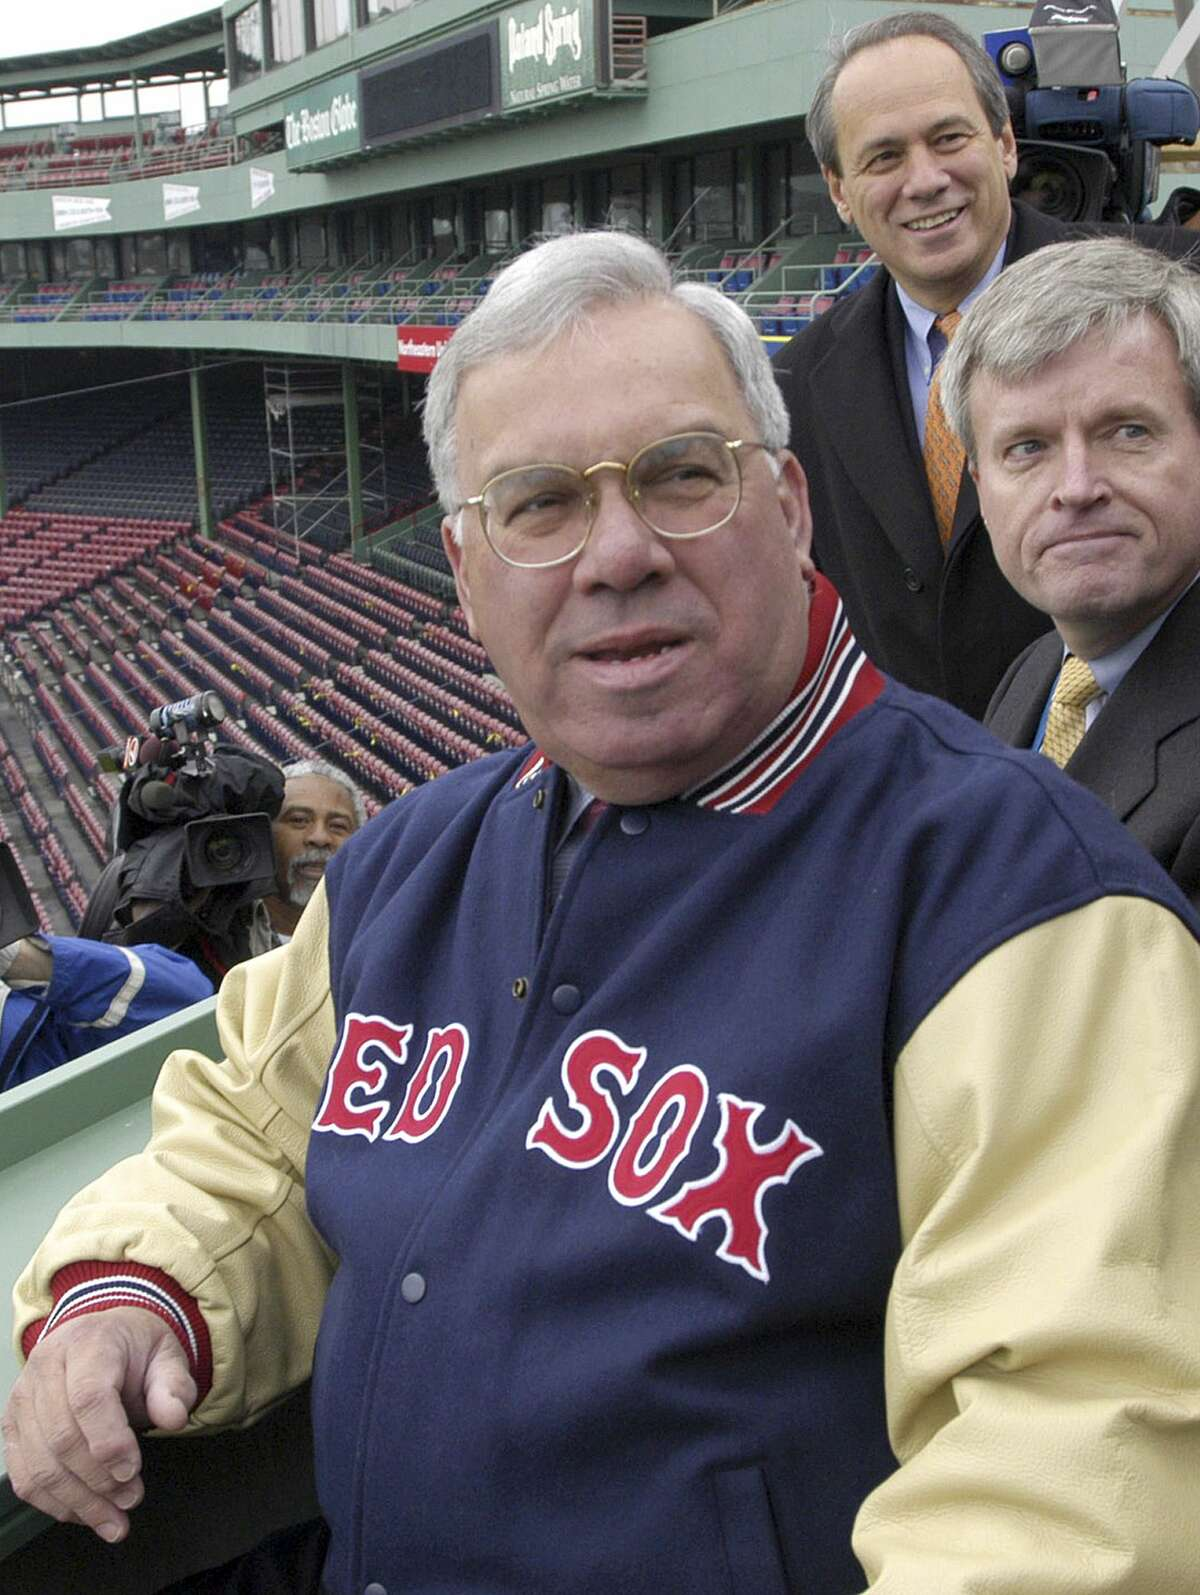 """FILE - In this April 3, 2003 file photo, Boston Mayor Thomas Menino, foreground, is given a tour of the new seating area above the """"Green Monster"""" left field wall at Fenway Park, home of the Boston Red Sox, in Boston. With Menino are city official Mike Galvin, right, and Red Sox President and CEO Larry Lucchino, rear. Menino, who was diagnosed with cancer a month after leaving office in 2013, died Thursday, Oct. 30, 2014 in Boston. He was 71. (AP Photo/Josh Reynolds, File)"""